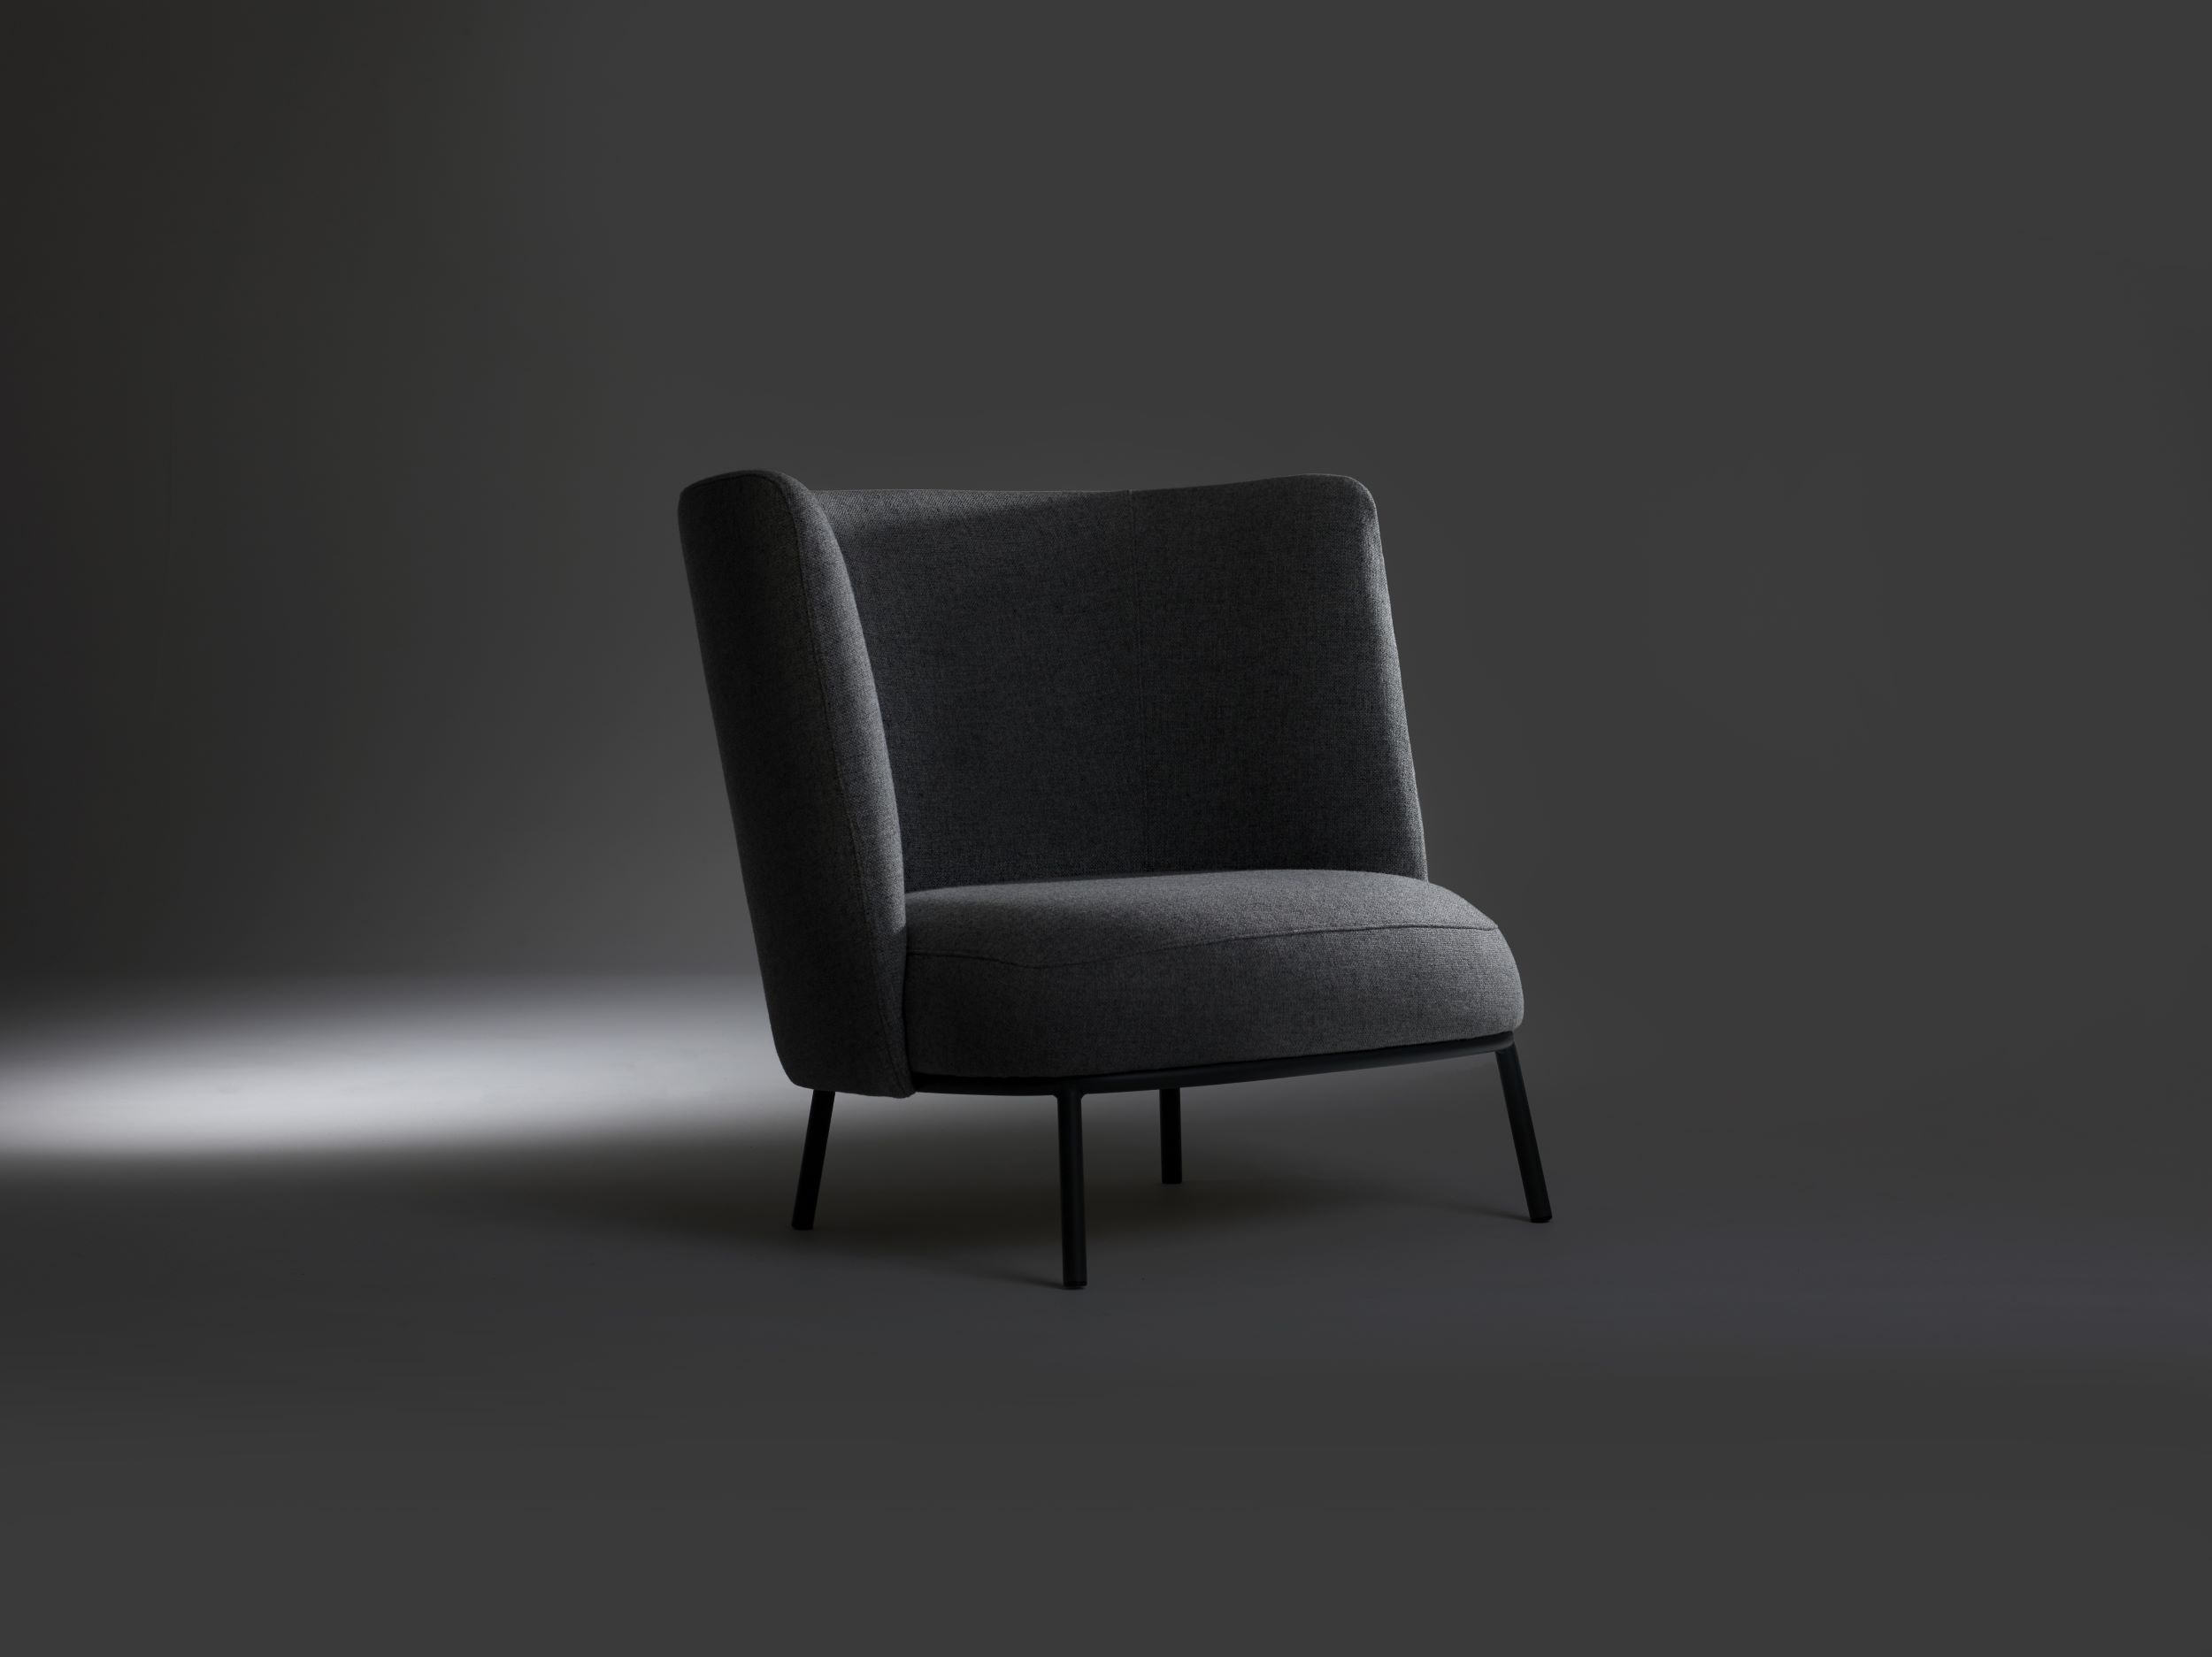 Shift easychair high and ottoman by Debiasi Sandri for Offecct